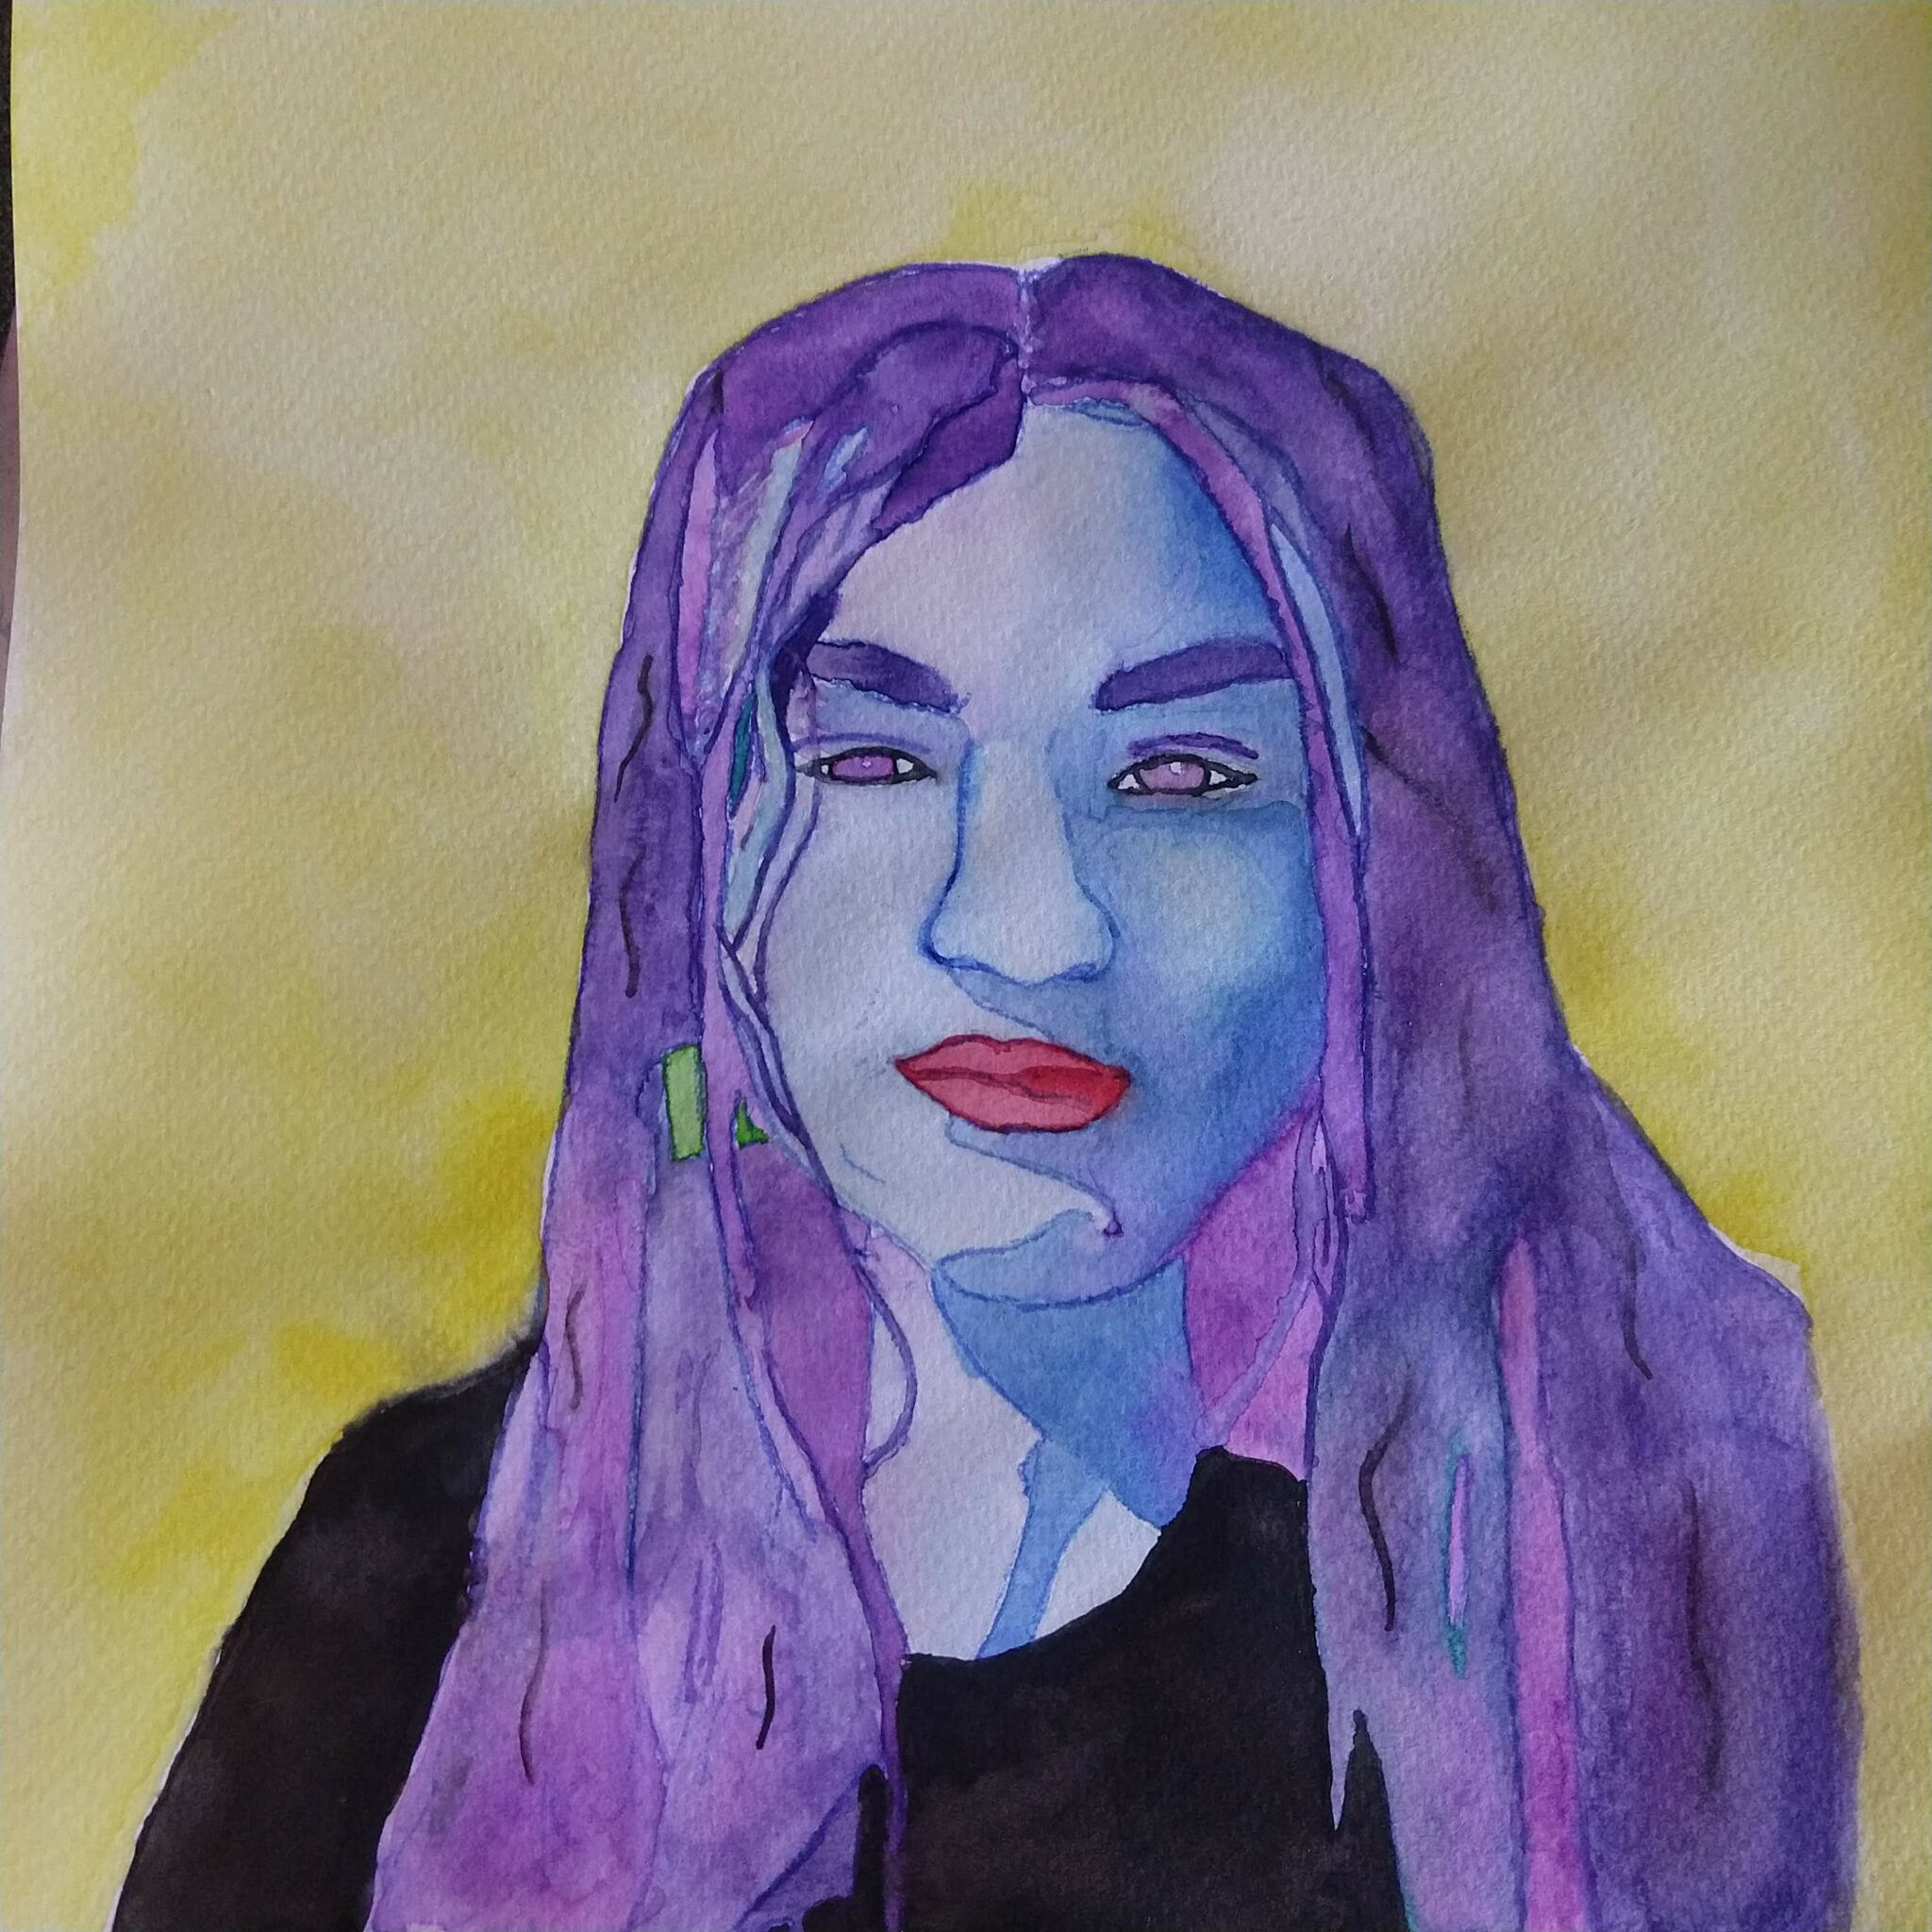 Painting of a person with bright colors and purple hair